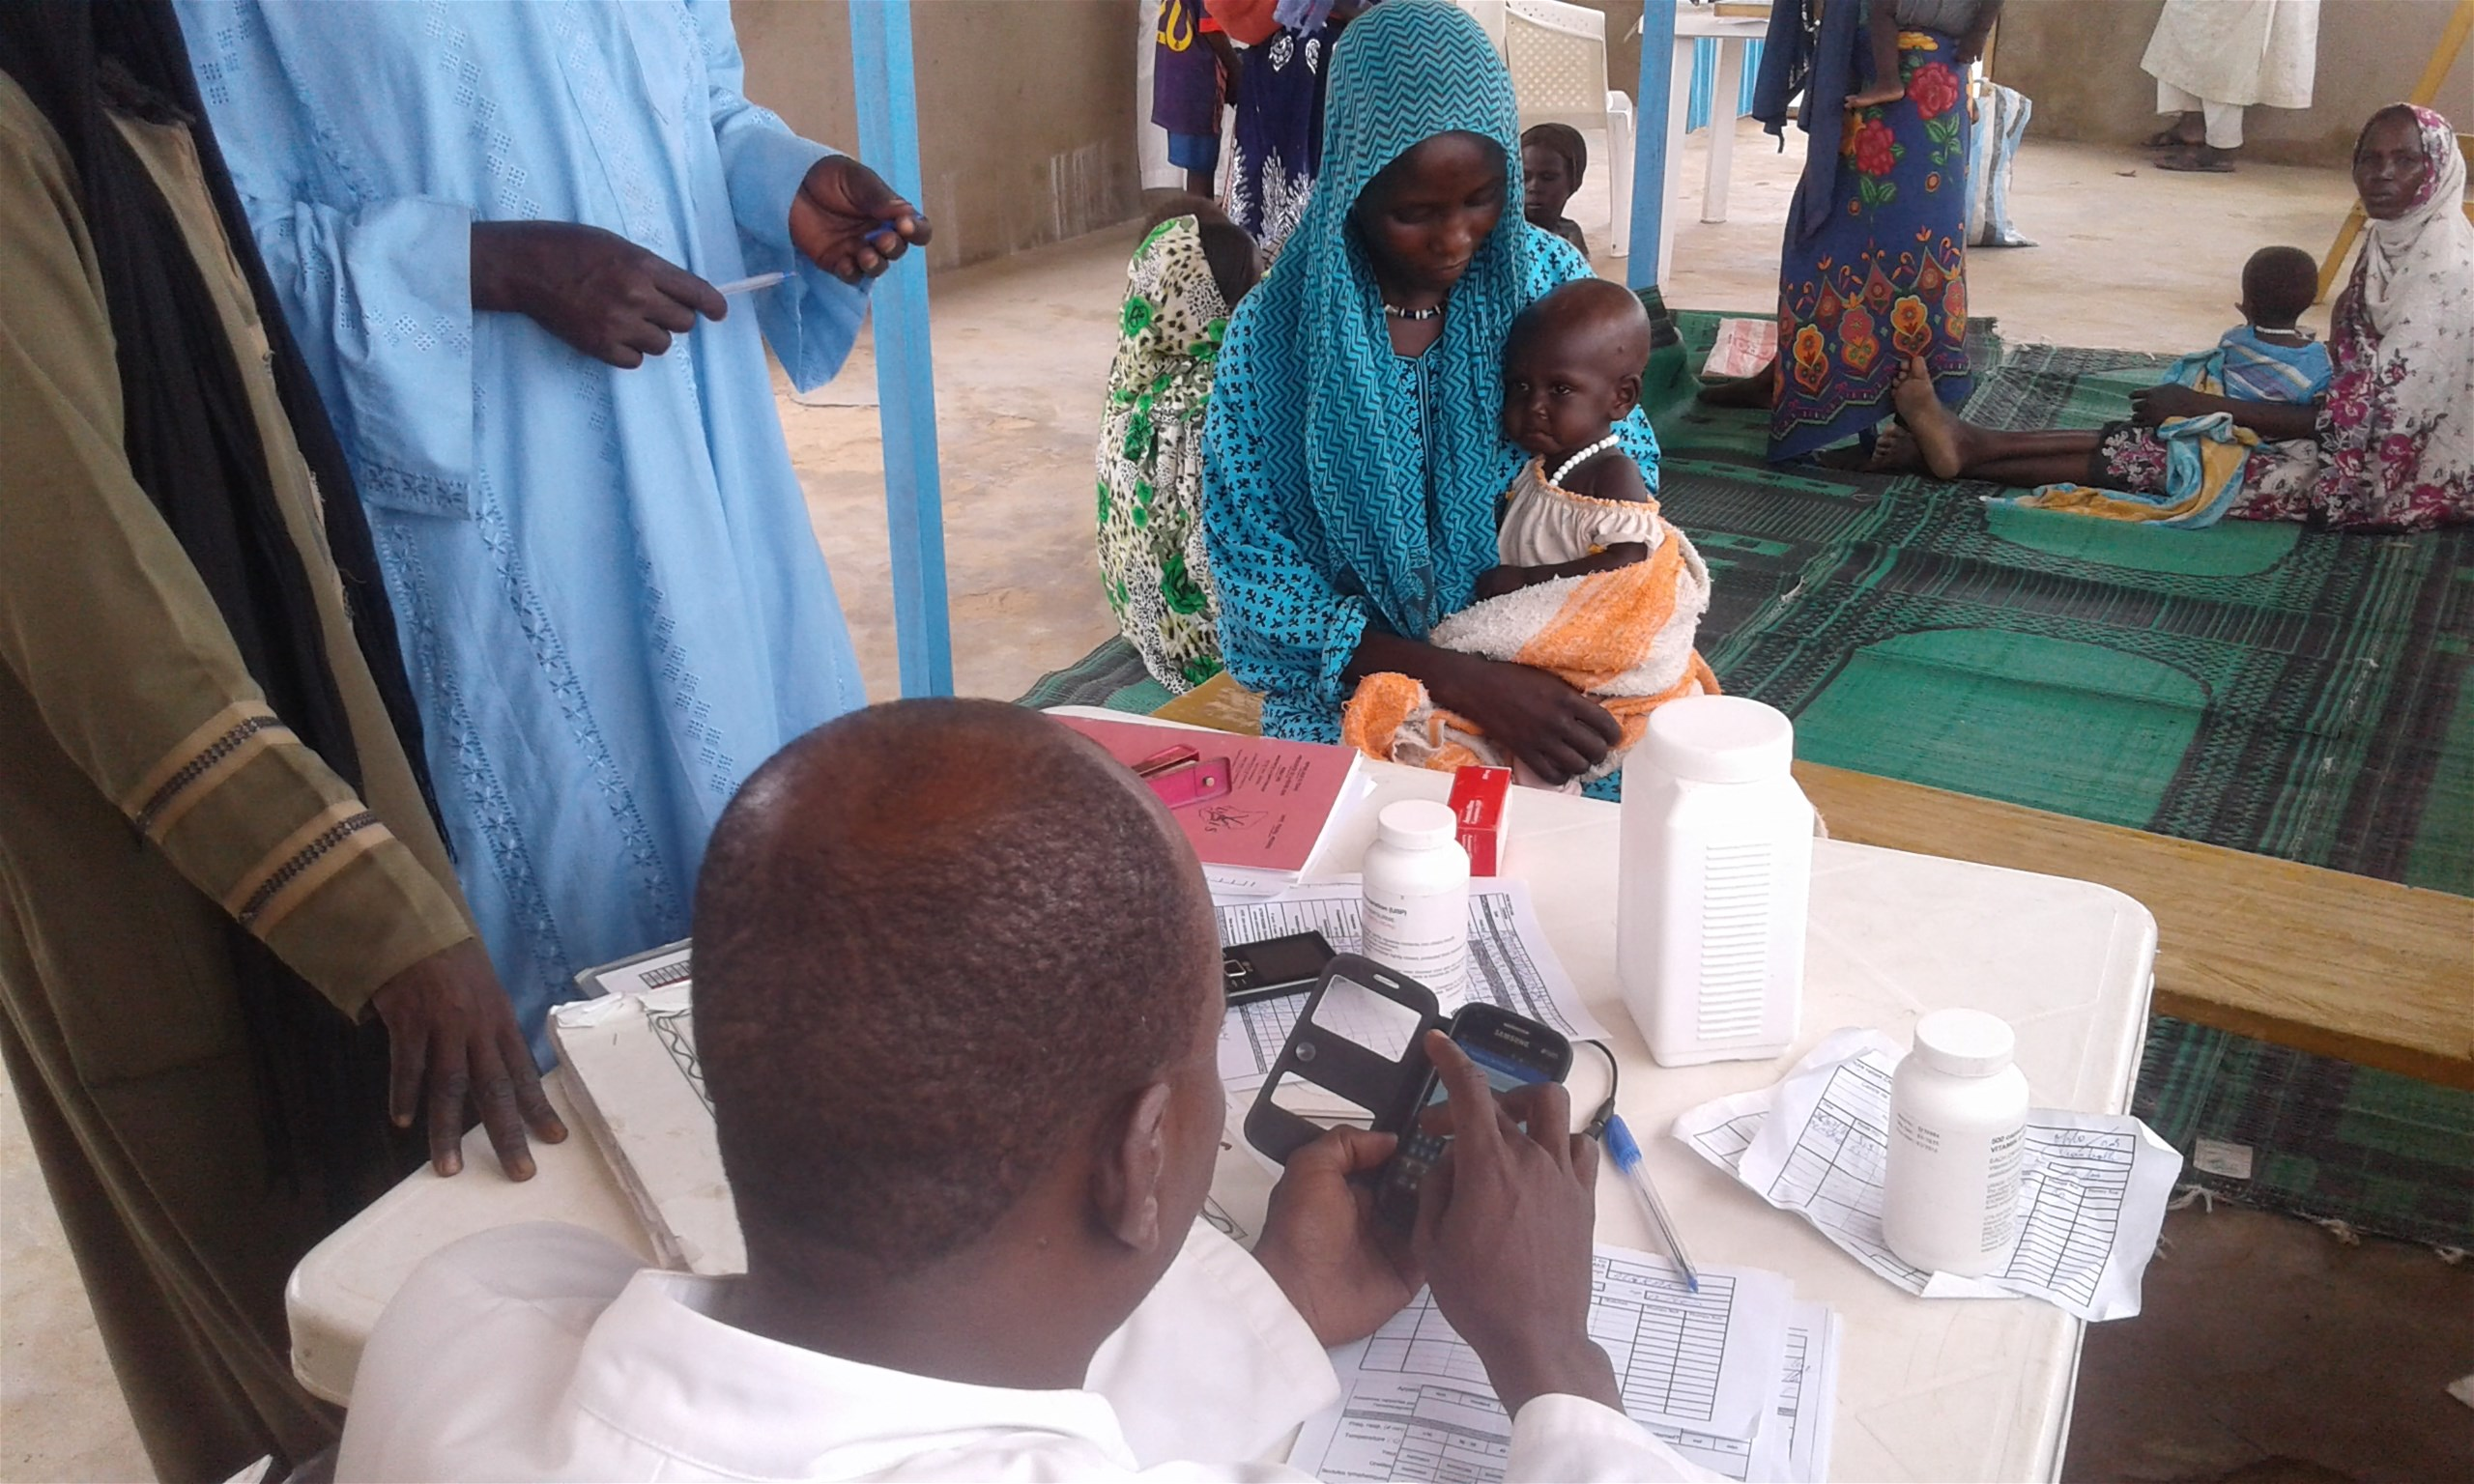 A health worker using the CMAM app in Ouaddai region, Chad